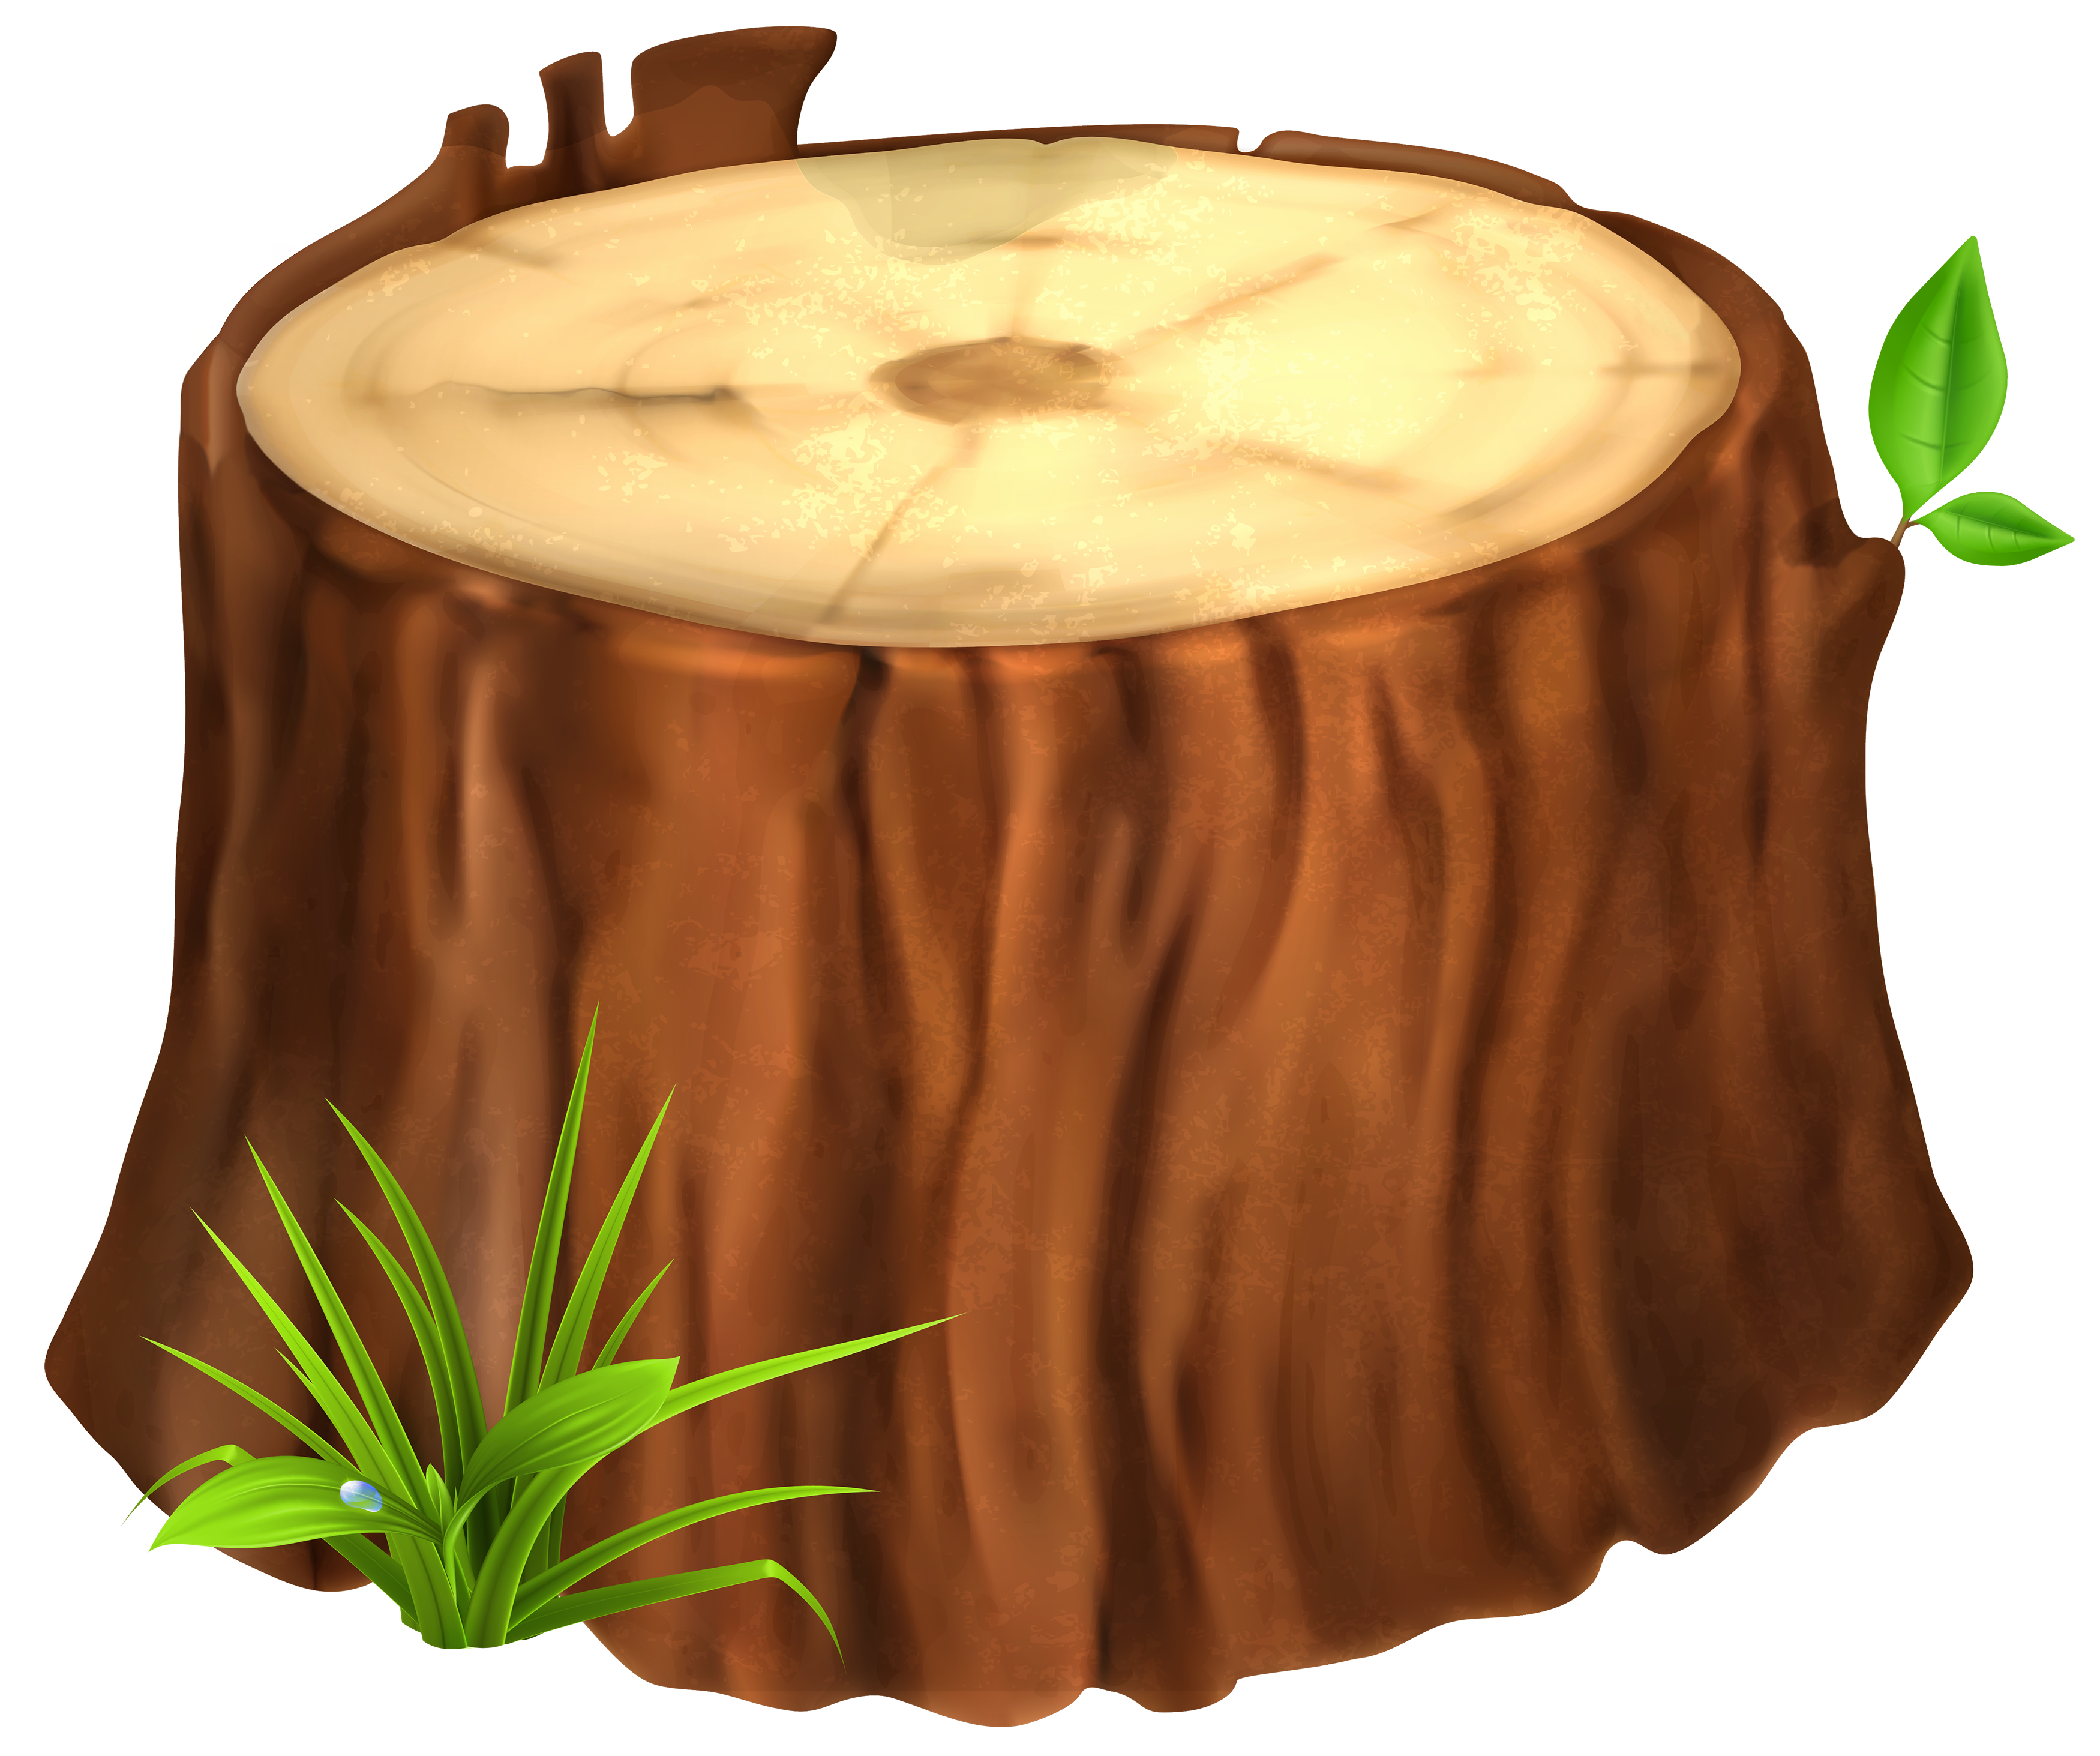 Stump clipart #4, Download drawings